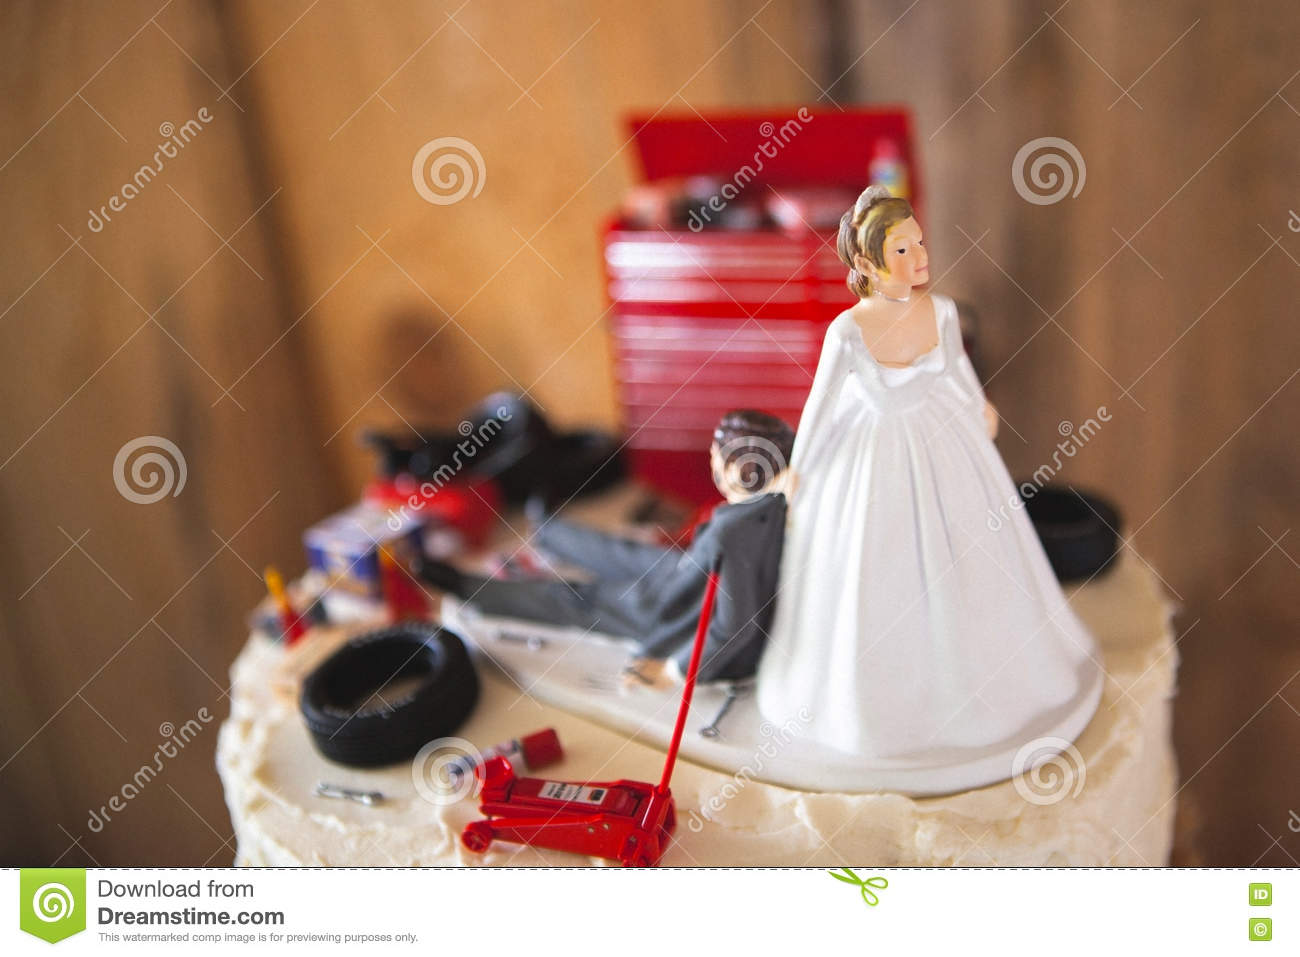 Redneck Wedding Cakes | Redneck Wedding Cake Topper With Mechanic Groom Stock Photo Image